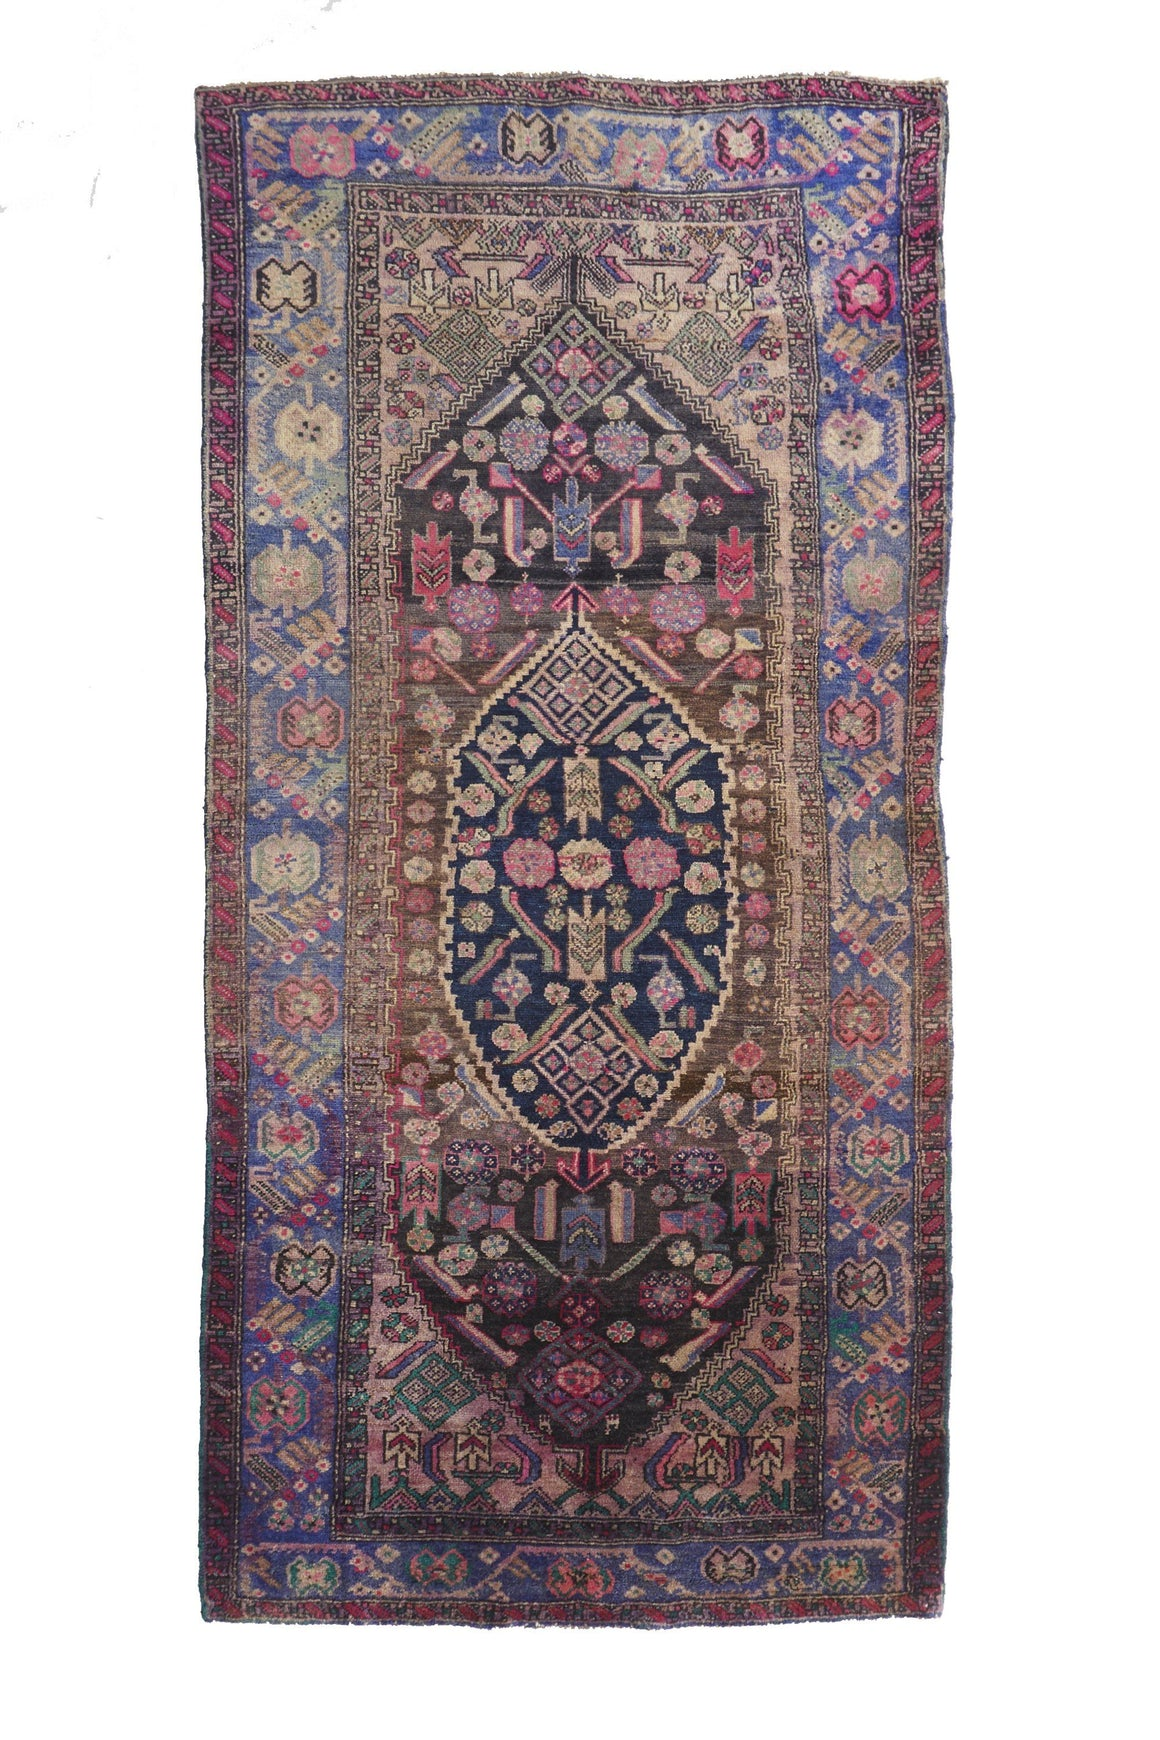 "Wildflower Turkish Vintage Area Rug - 4'2.5"" x 8'9"" - Canary Lane - Curated Textiles"